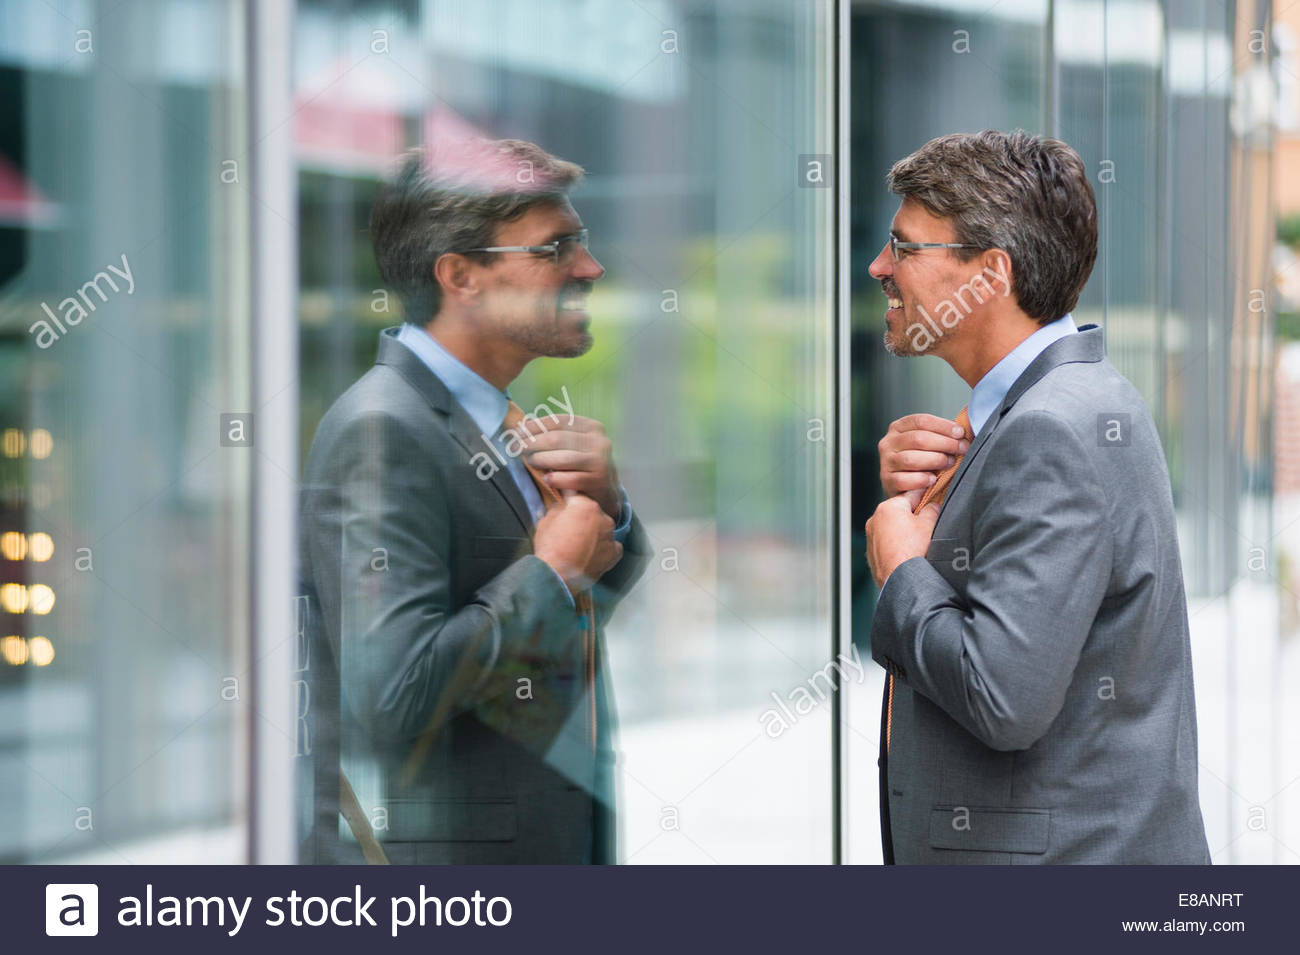 Mature businessman adjusting tie in shop window - Stock Image